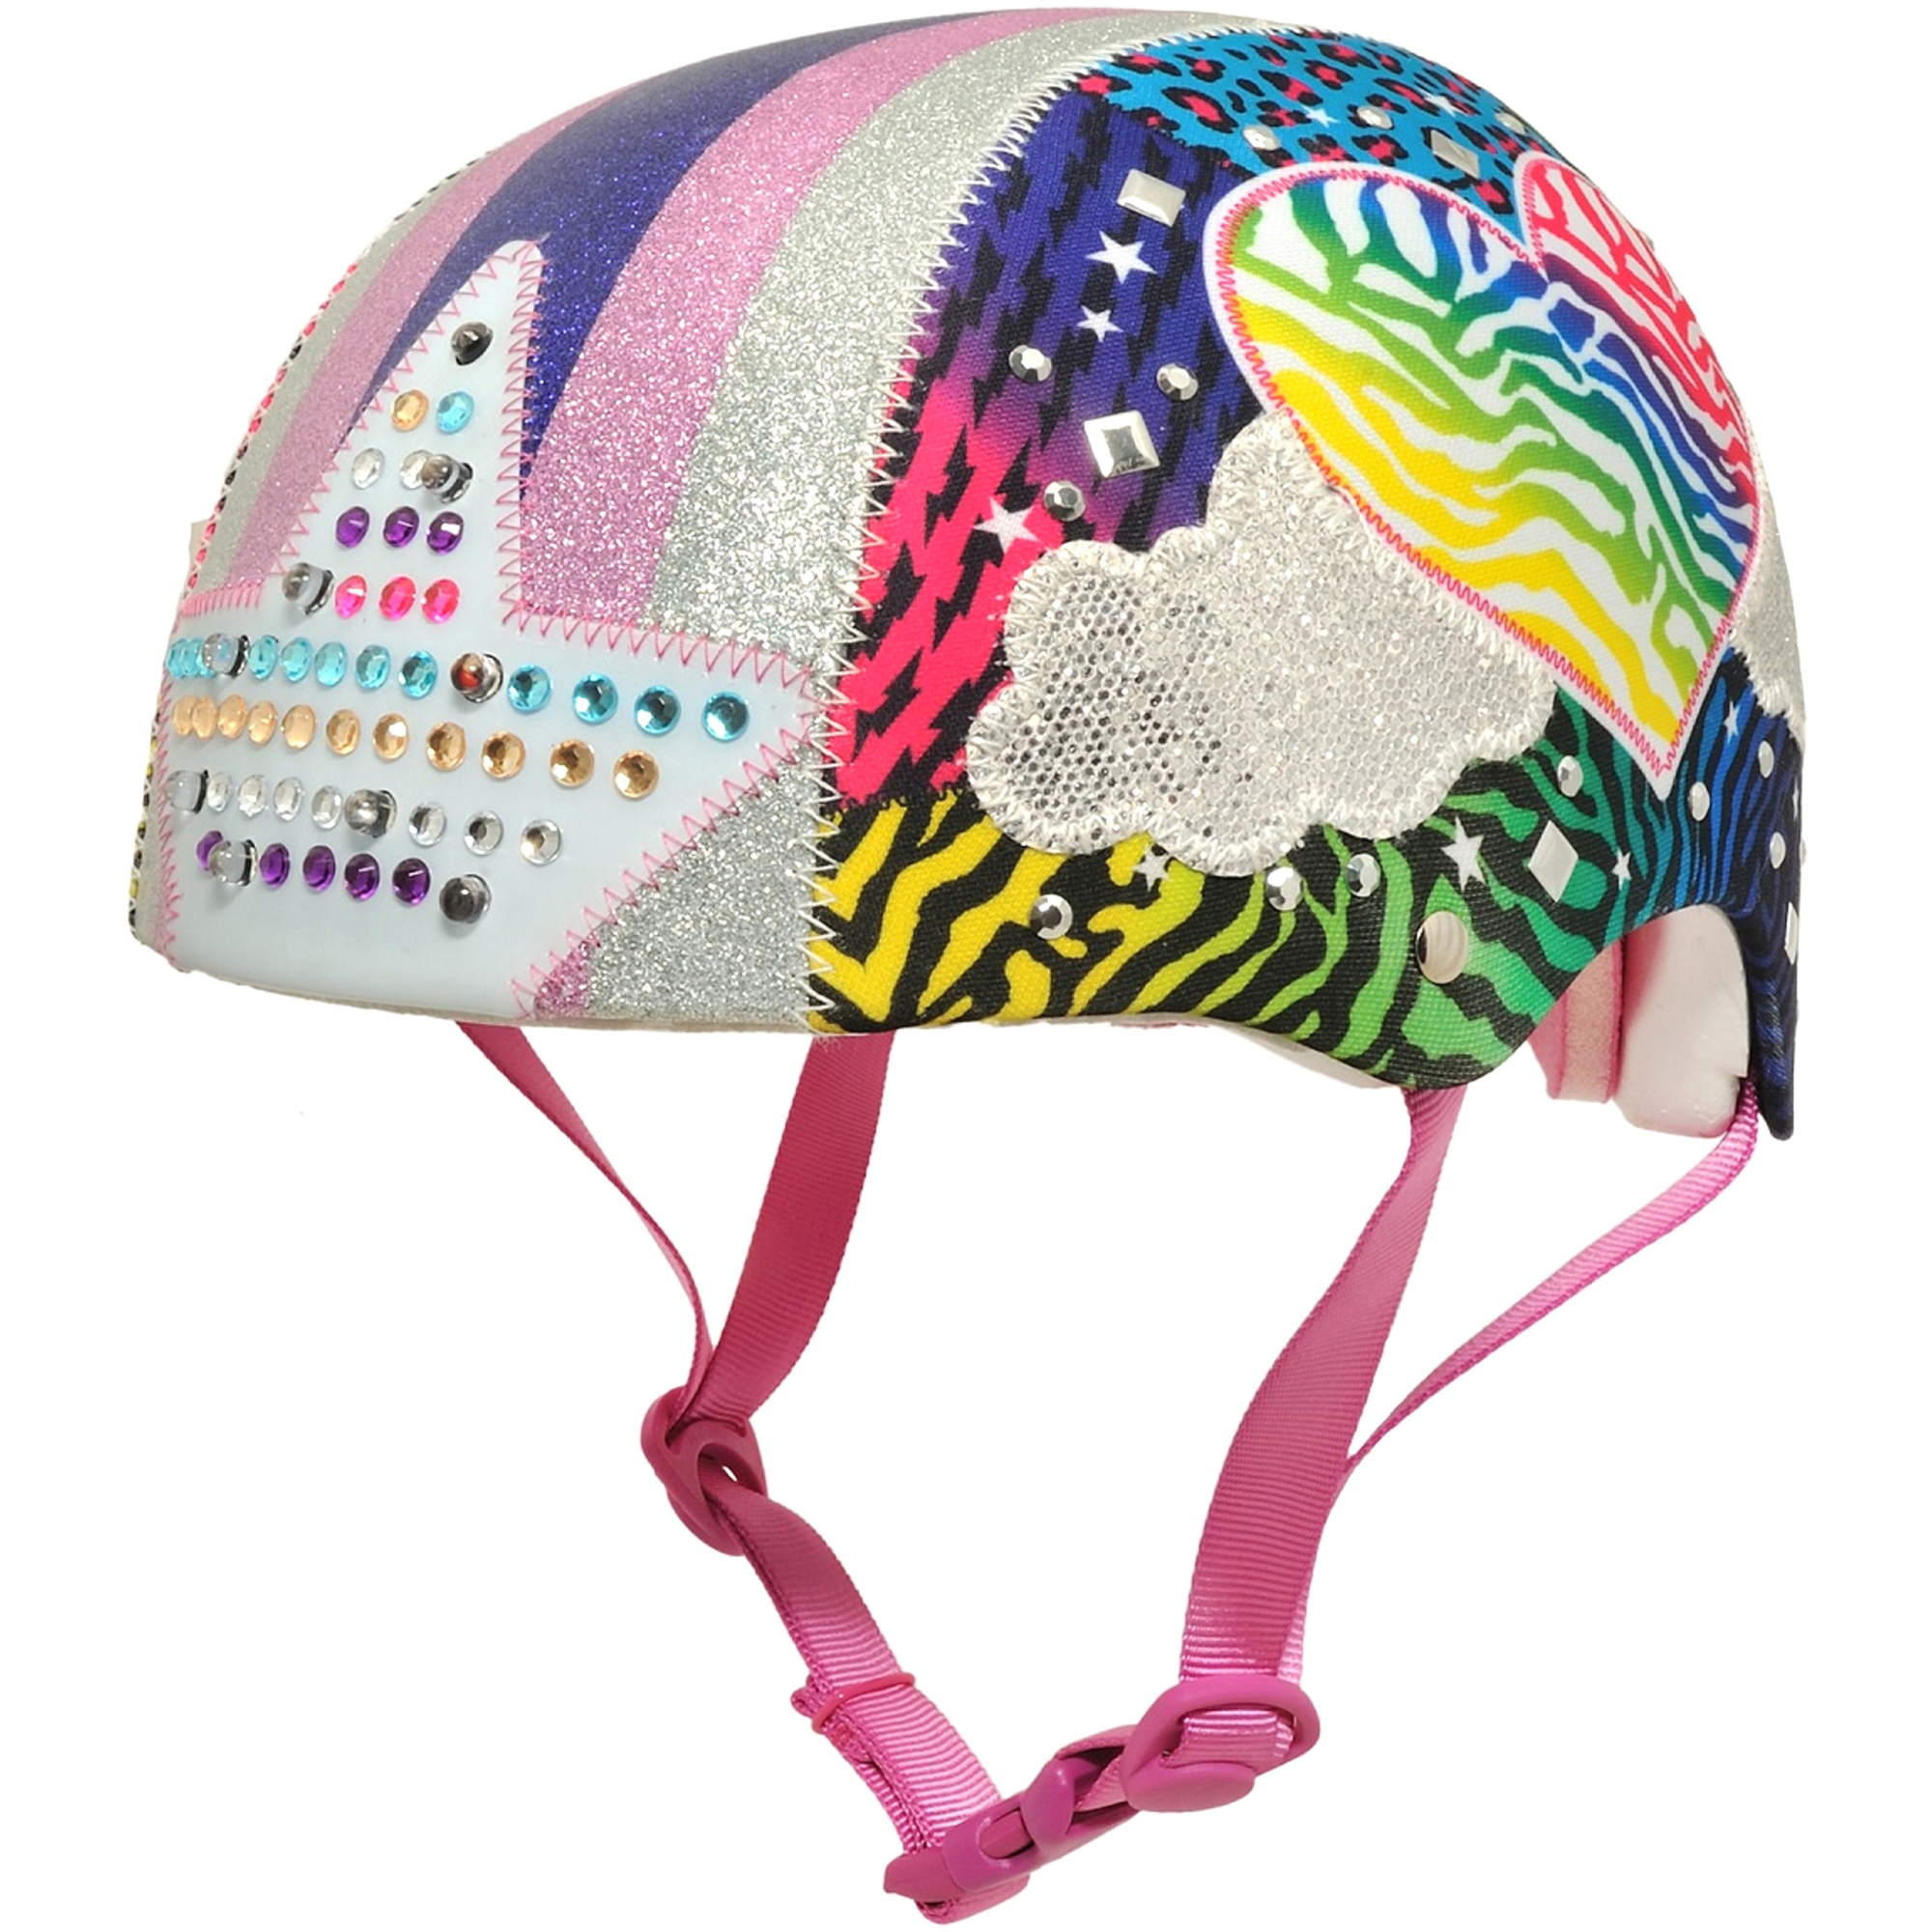 Raskullz Jungle Love Helmet with LED Lights, Child 5+ (50-54cm)